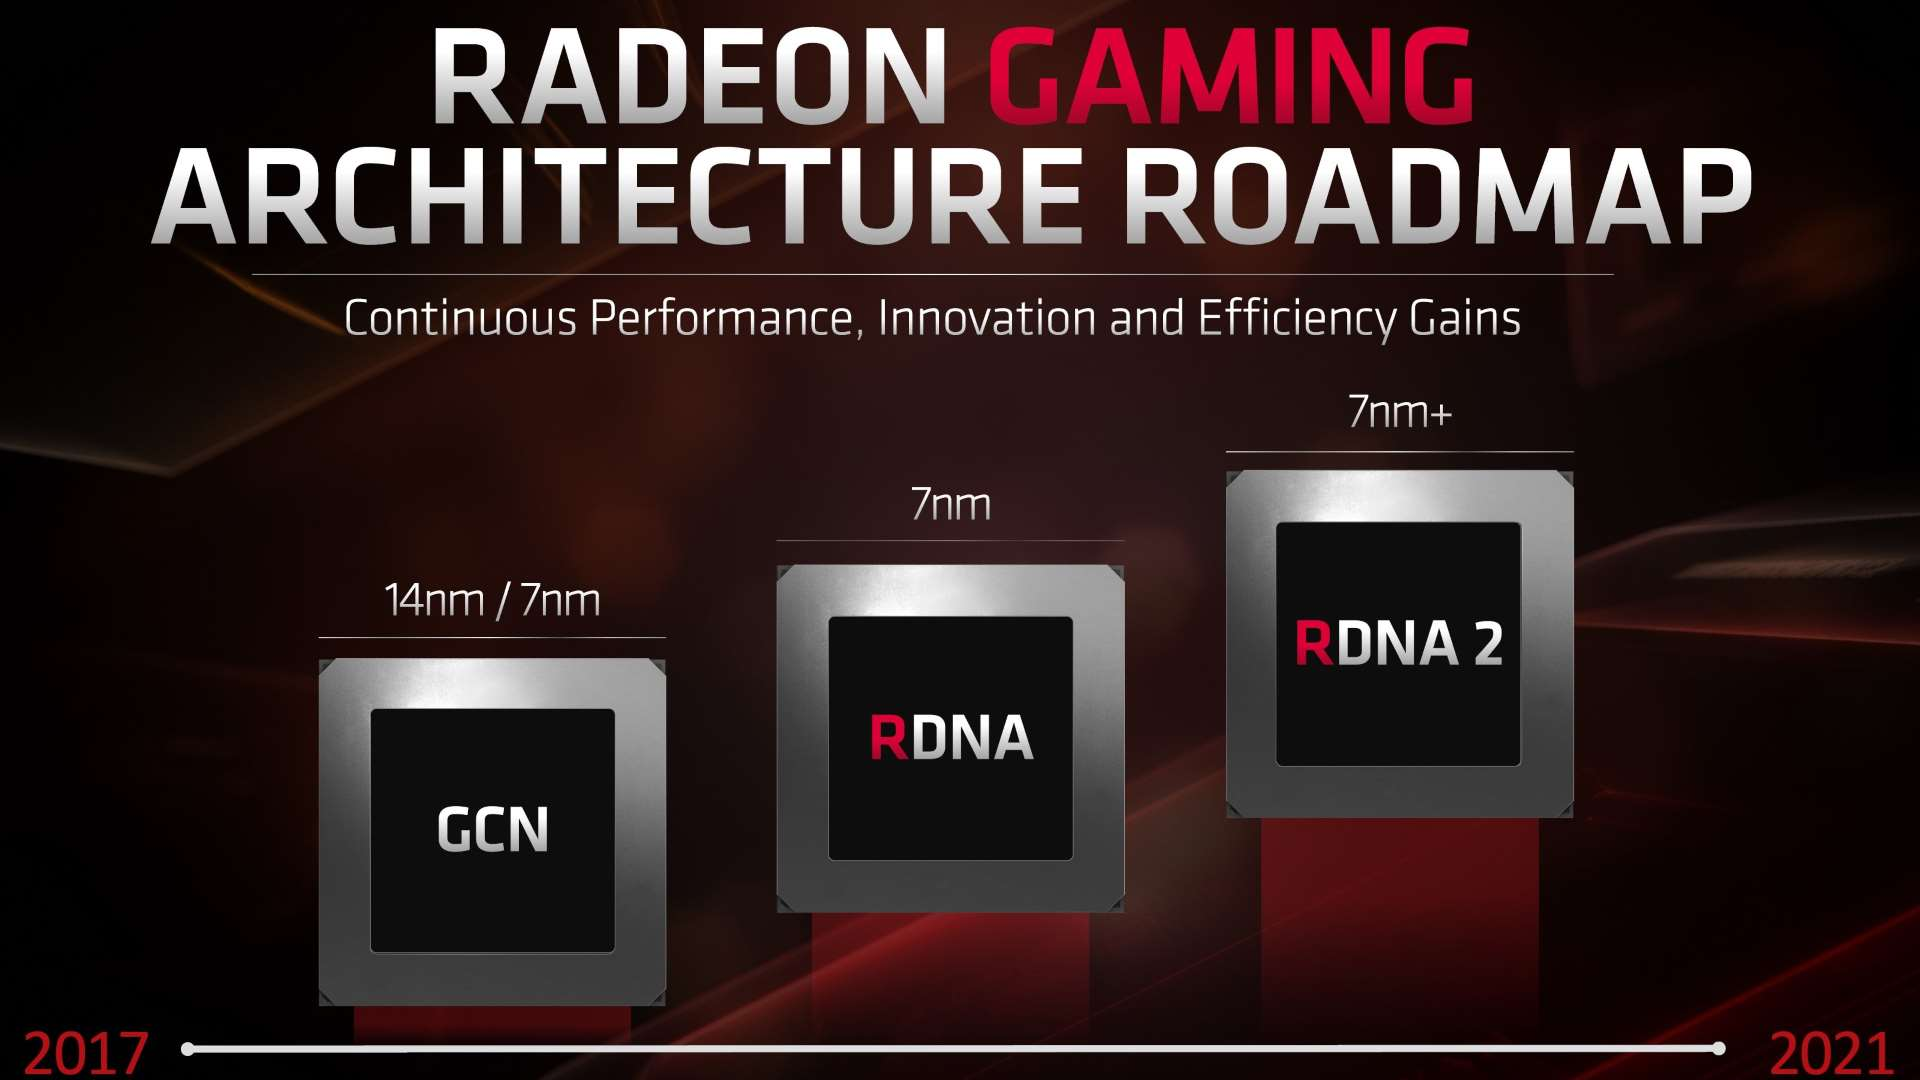 AMD's second-gen RDNA GPUs will feature hardware accelerated ray